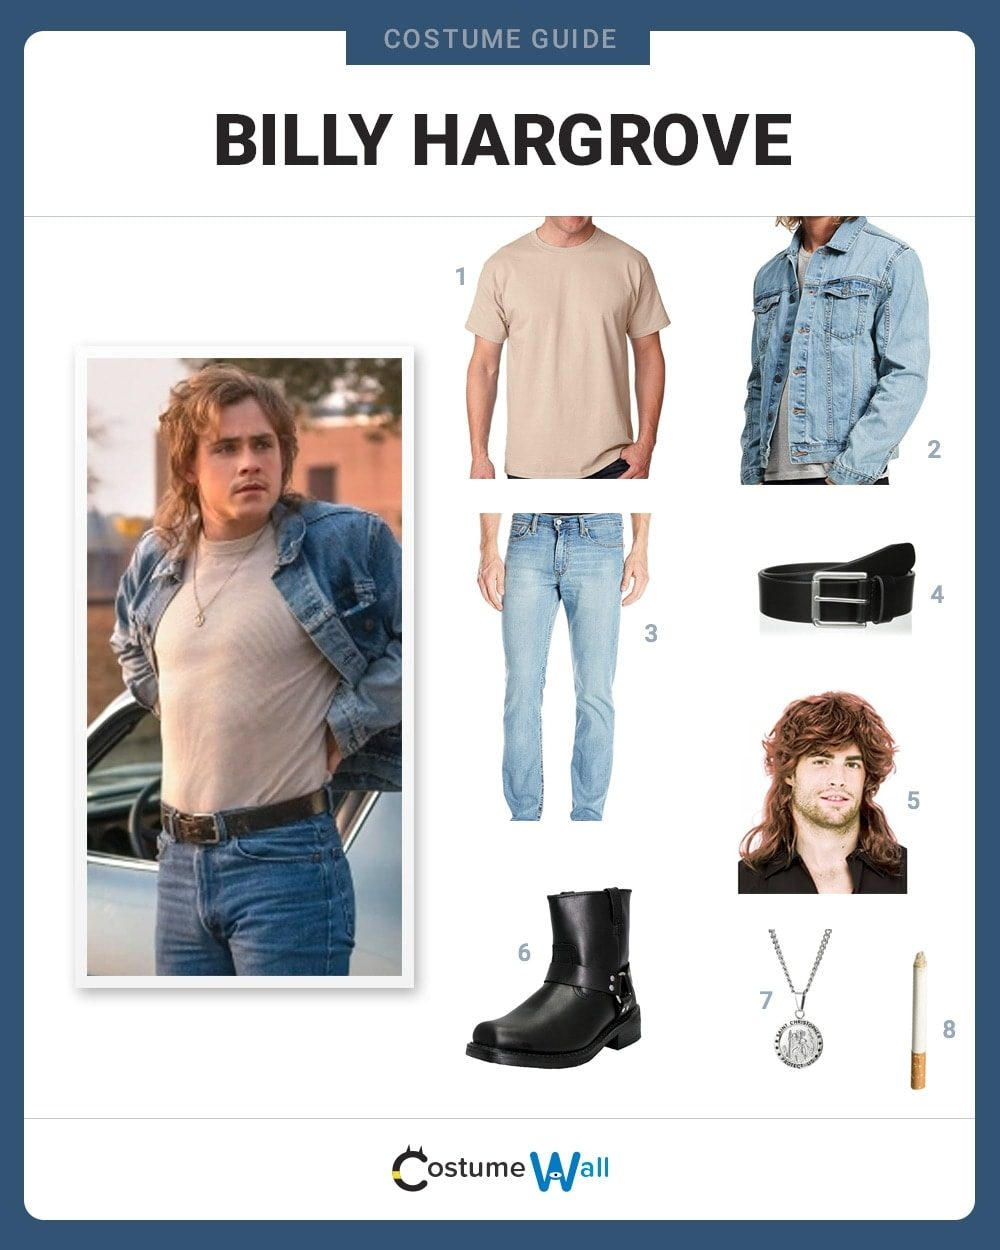 Billy Hargrove Costume Guide